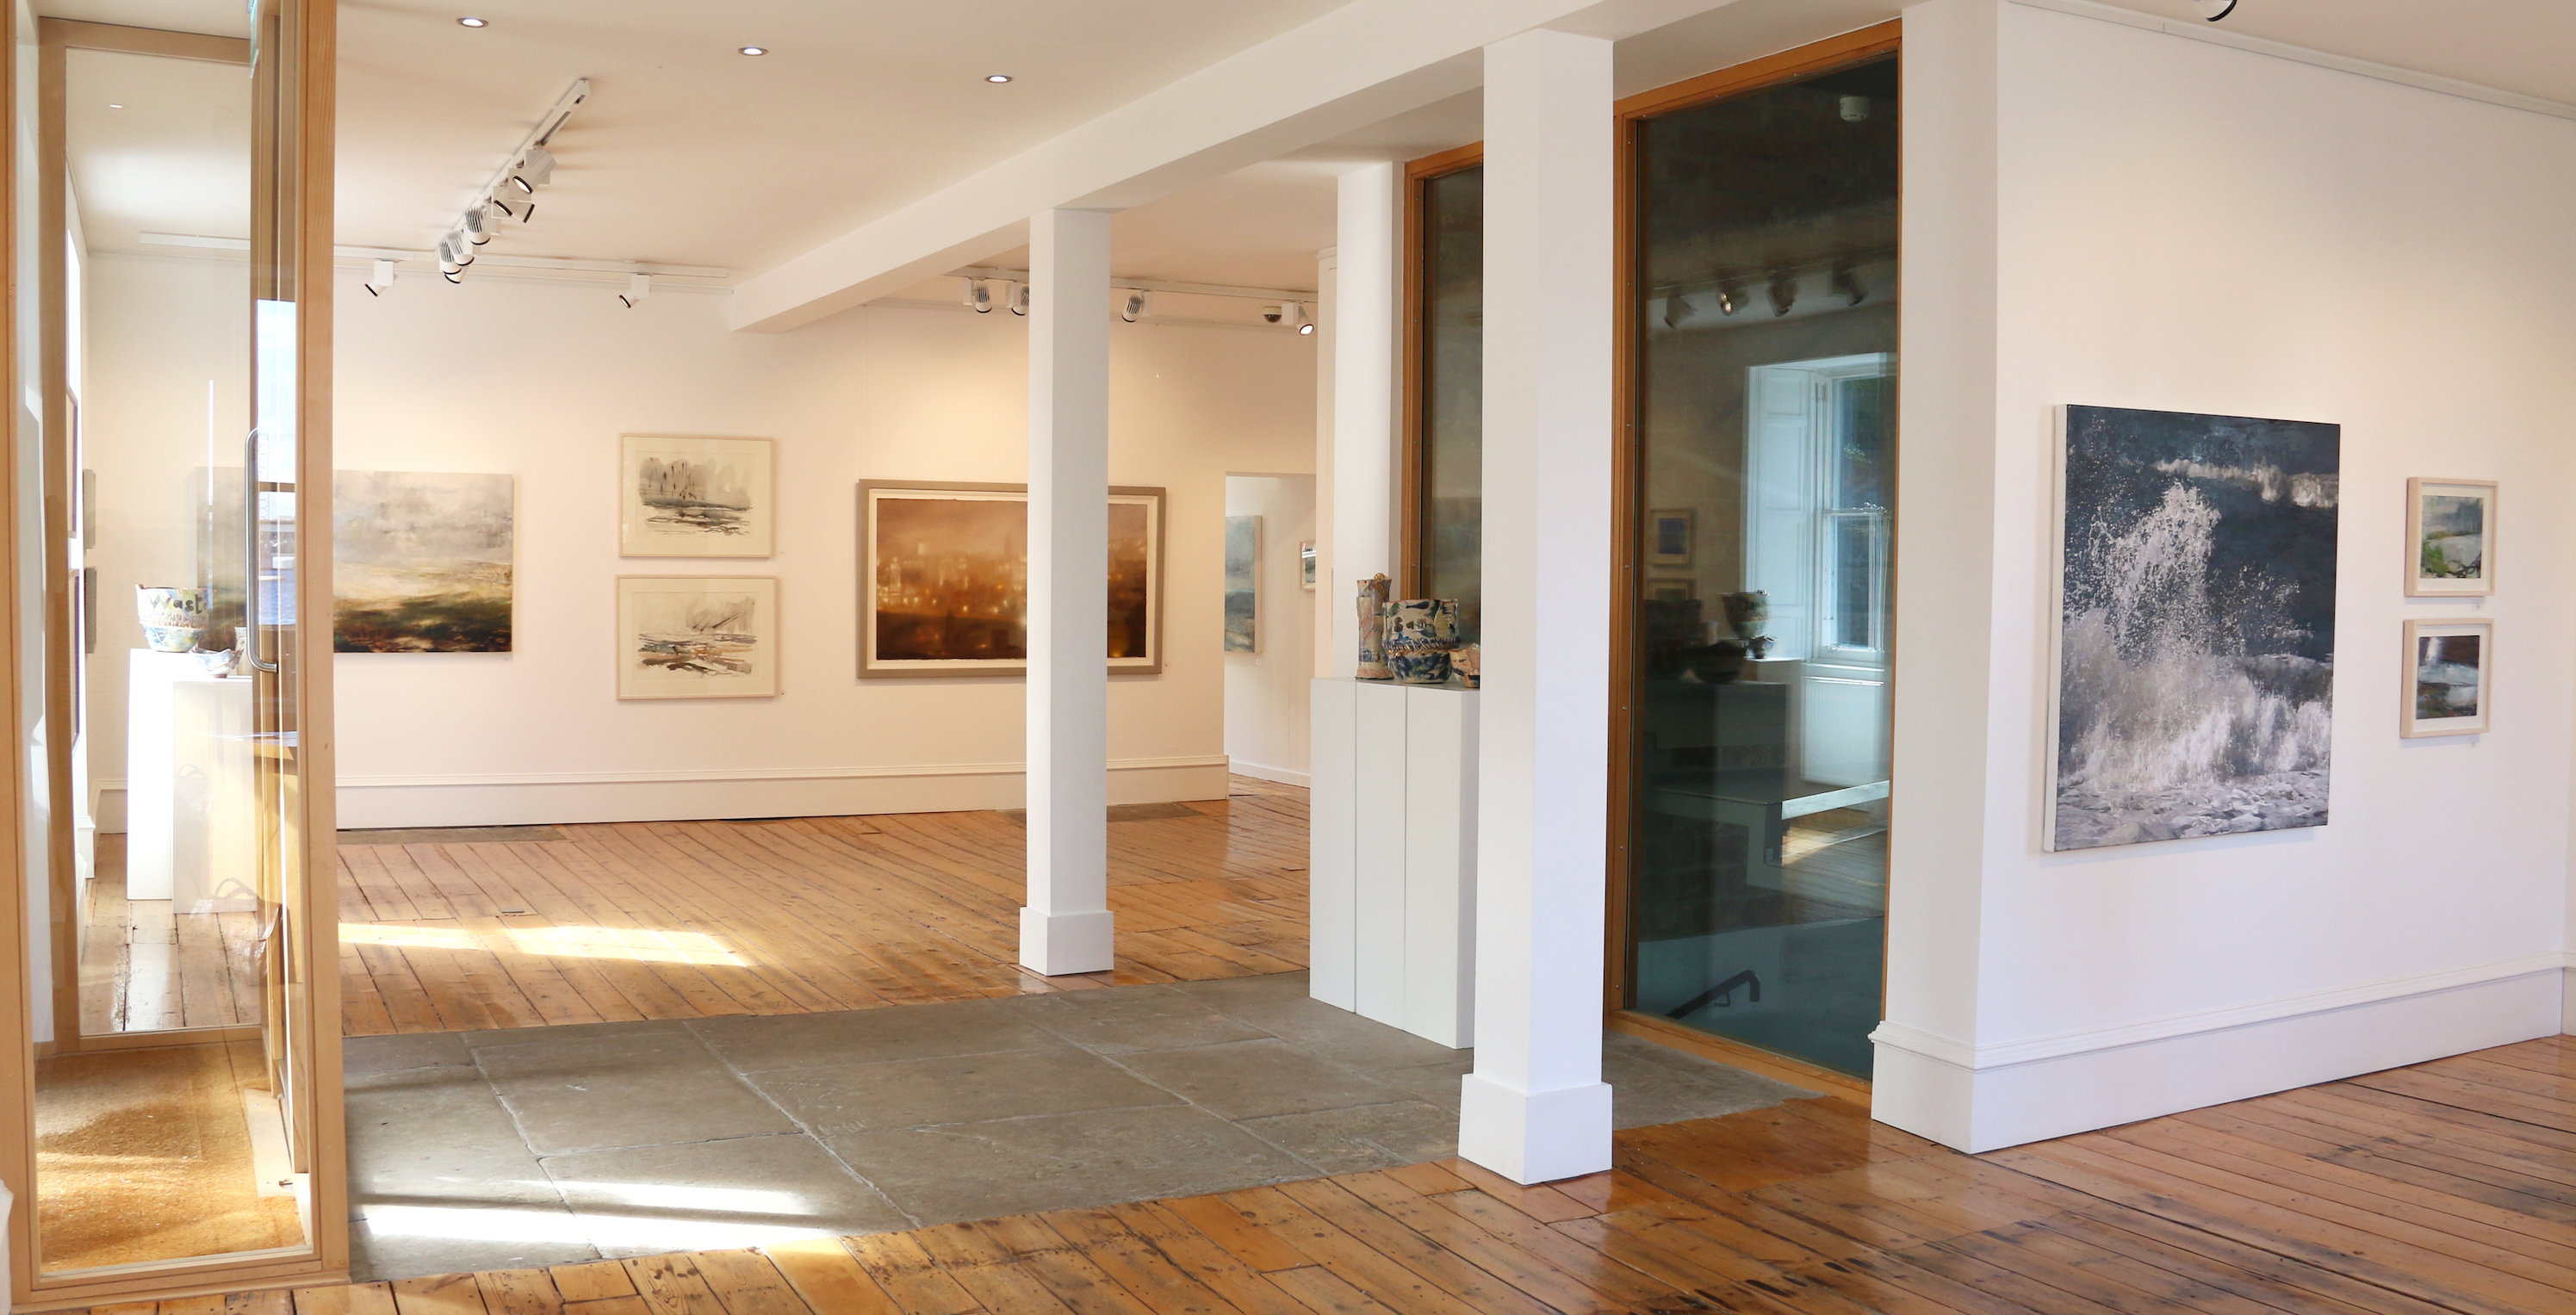 Tatha Gallery Members Exhibition